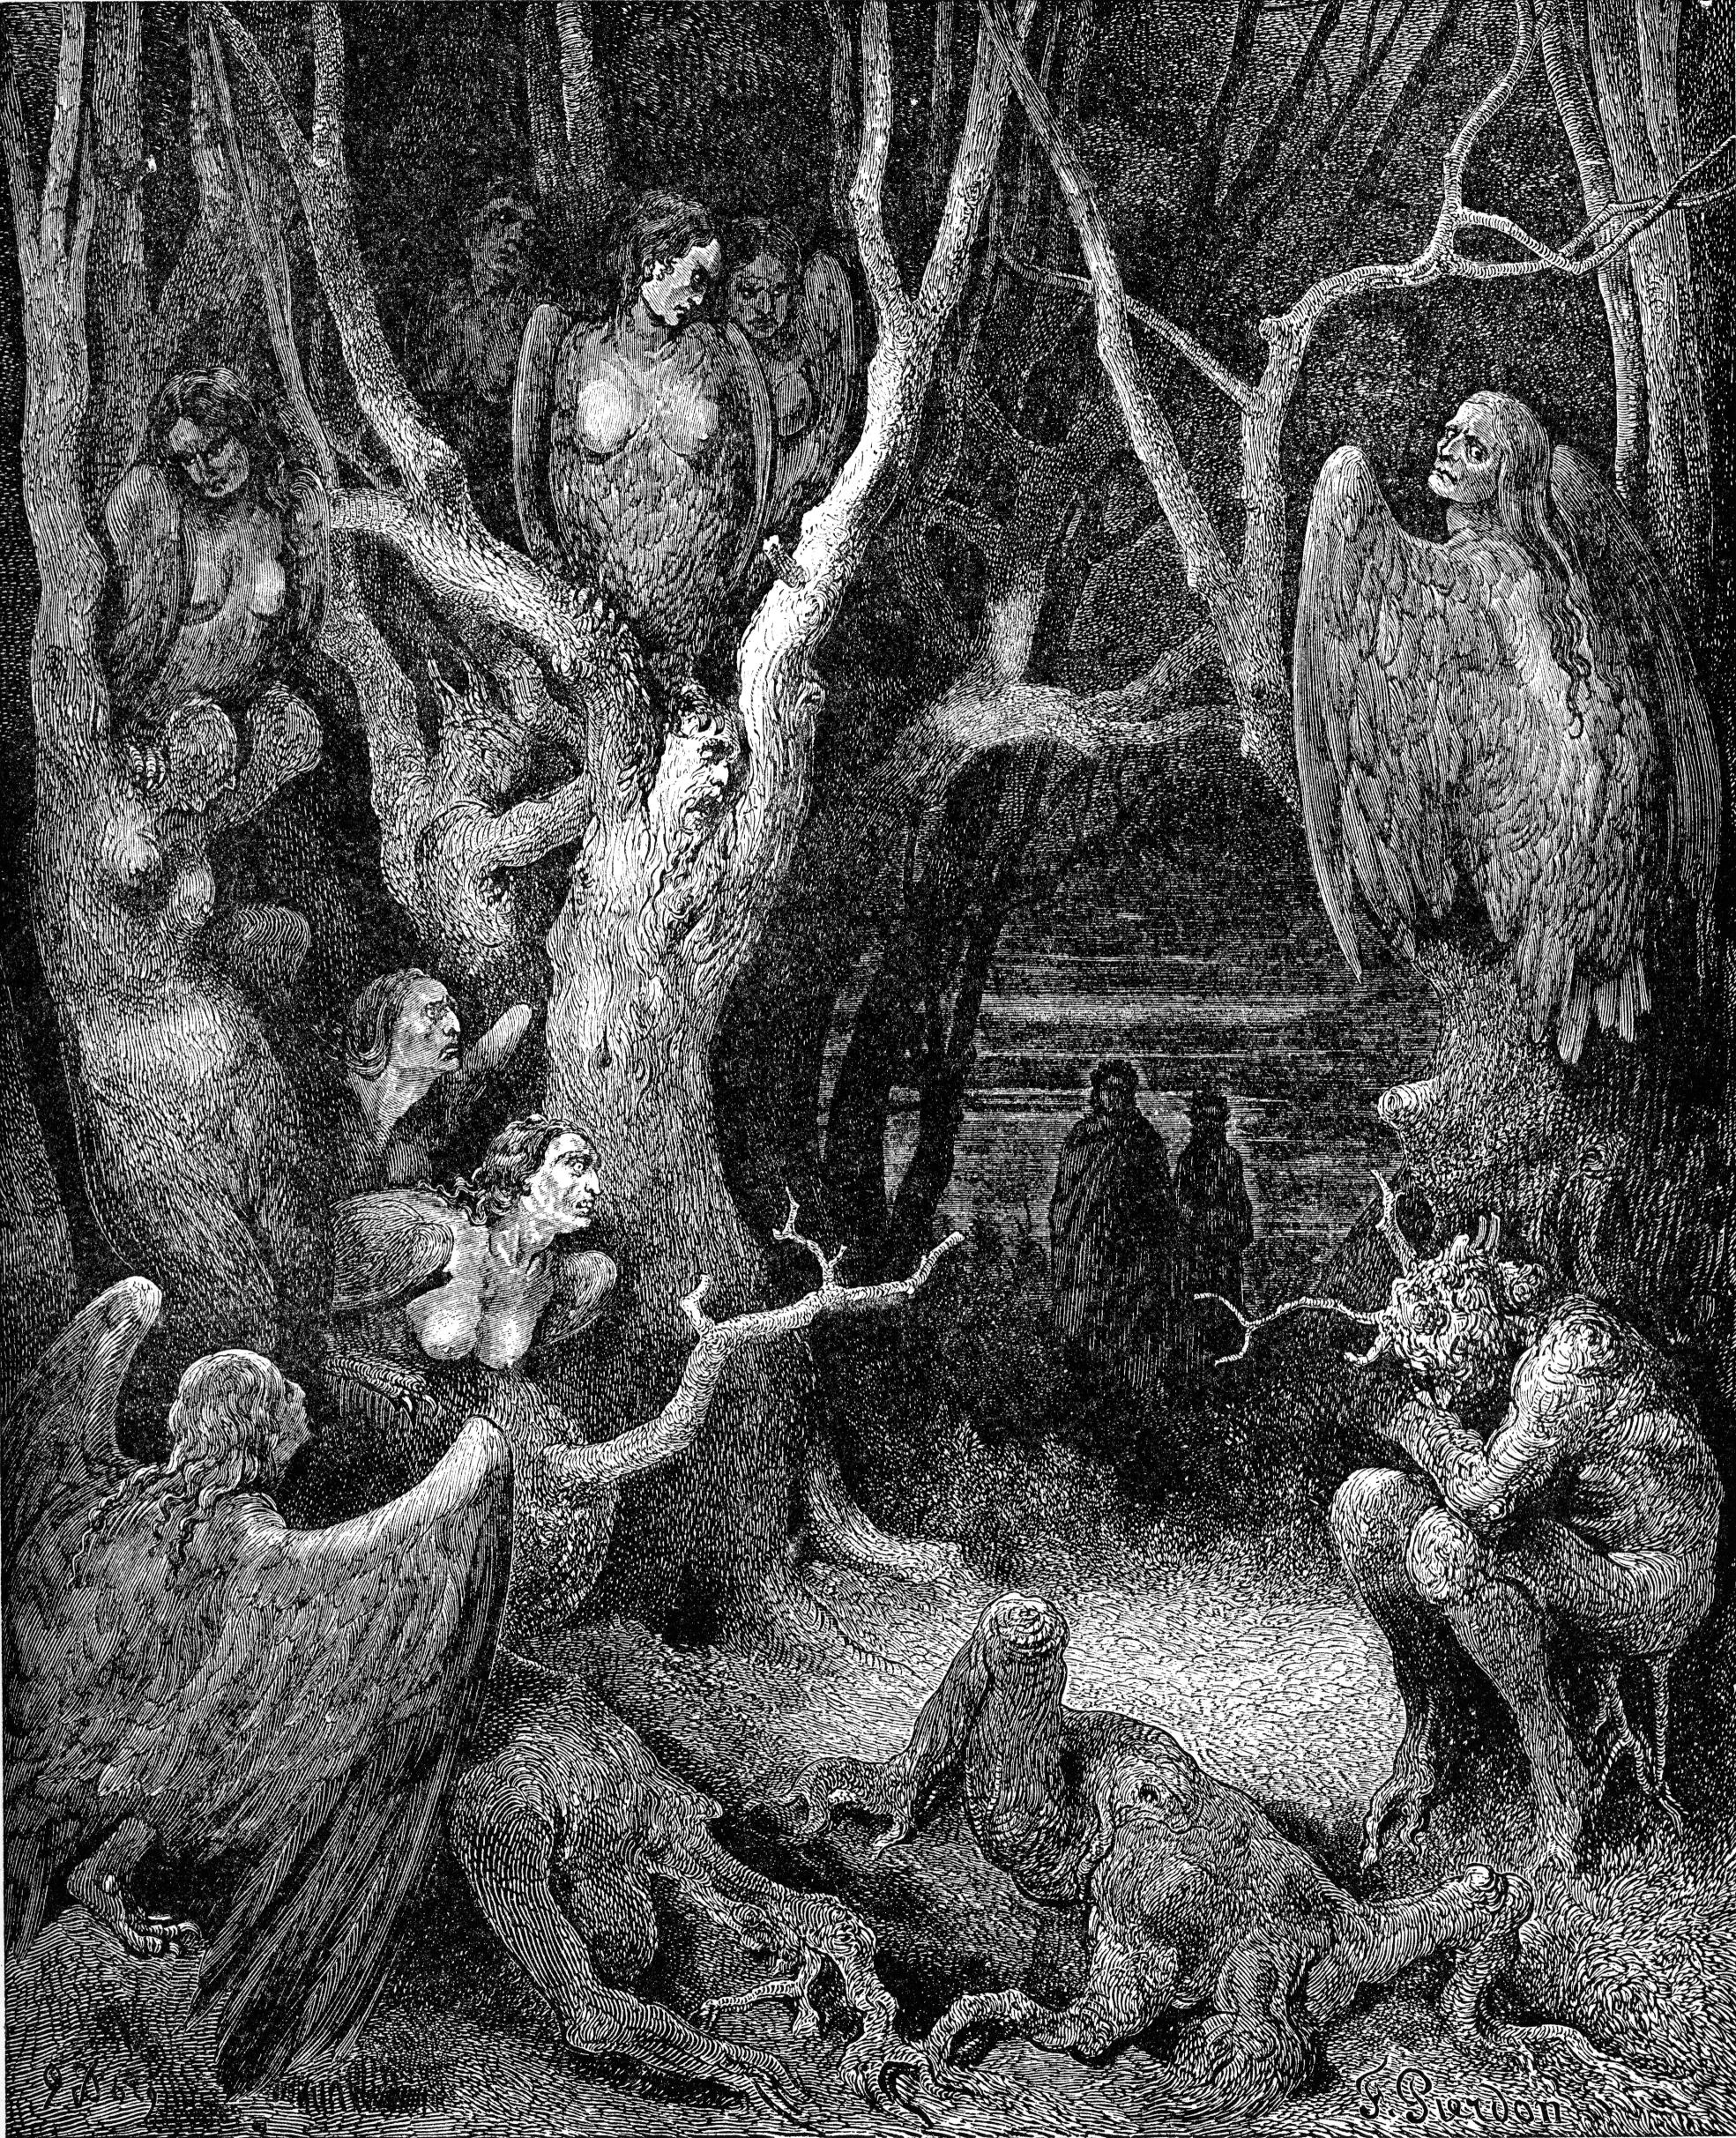 Dante's Inferno Wood of Self-Murderers